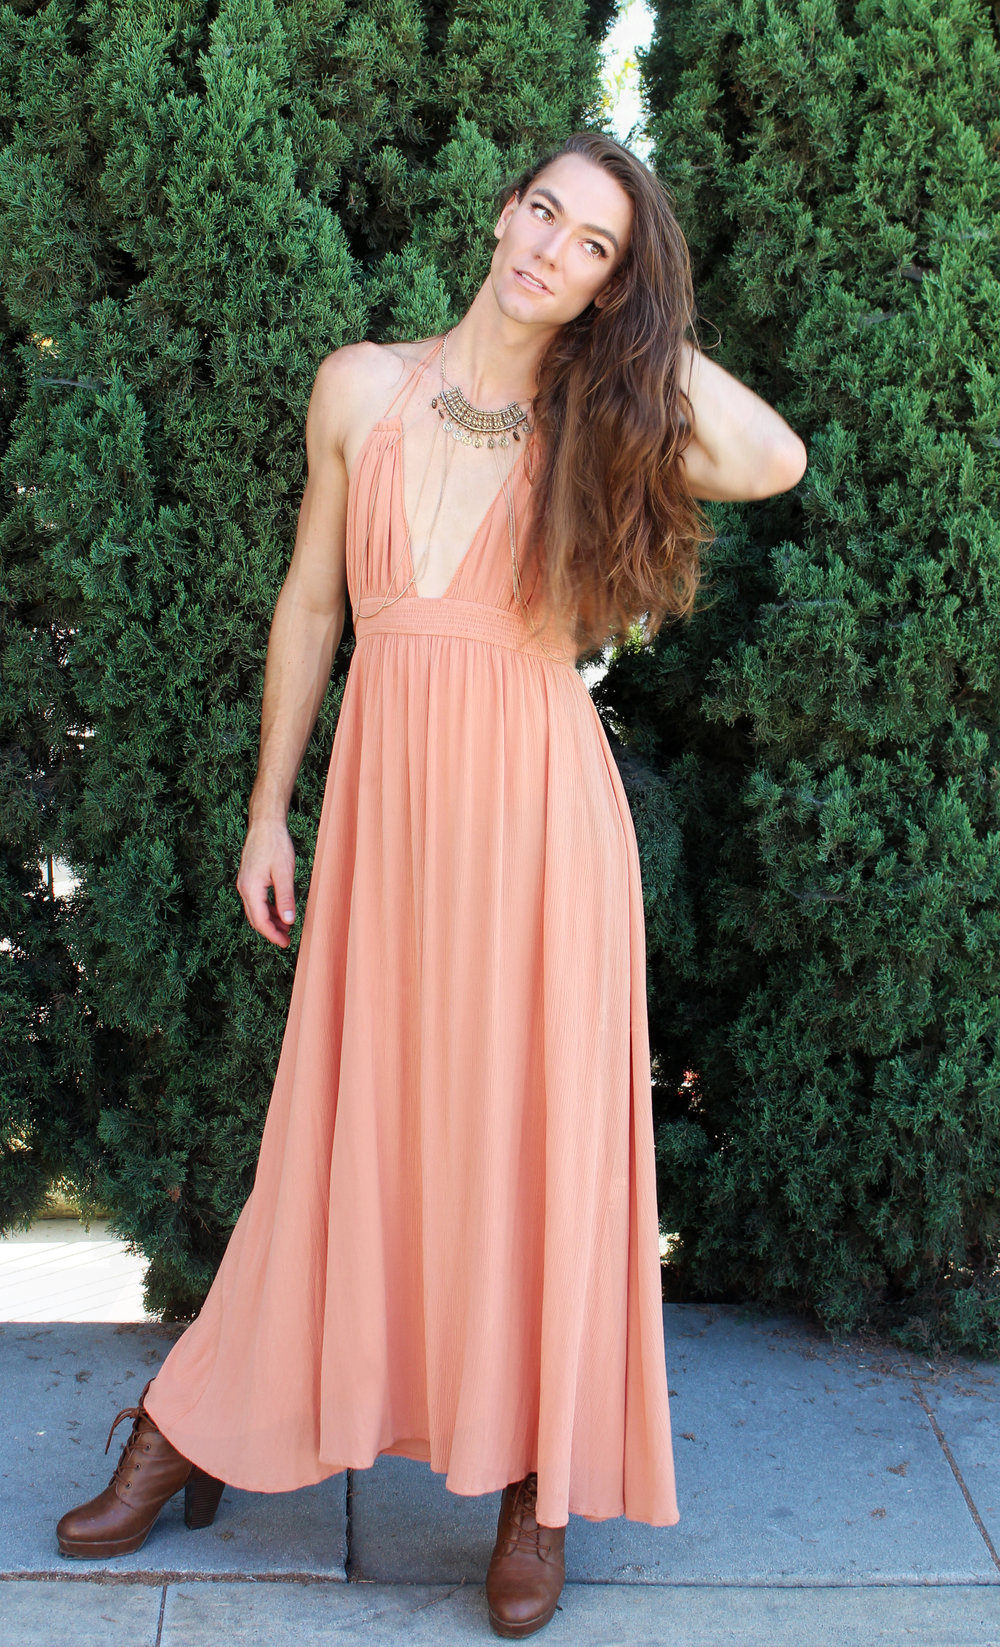 Photo by: Chloe Diaz    This Look is Easy Breezy. Kyle Wears a Peach Colored Dress, Brown Booties and a Statement Necklaces to Really Make this Look Work.